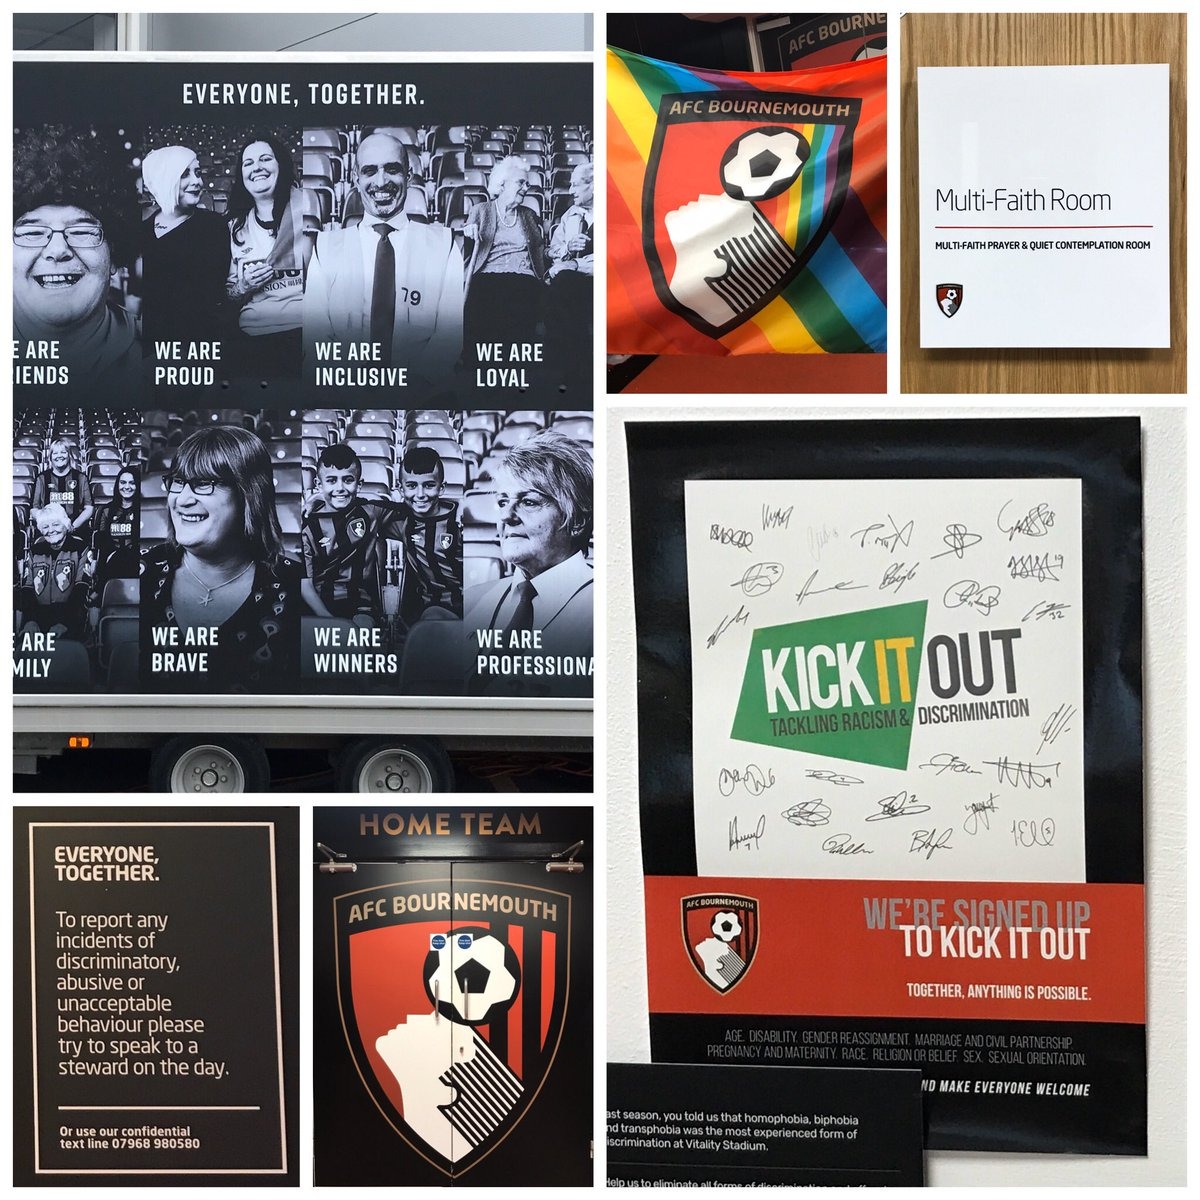 Exceptional progress being made @afcbournemouth working towards the highest PL Equality Standard! Such a pleasure to support the club and @benabberstein on behalf of @kickitout! #everyonetogether #KickItOutGeneration @sophiecooktalks #EDI<br>http://pic.twitter.com/3ghmwlKyB8